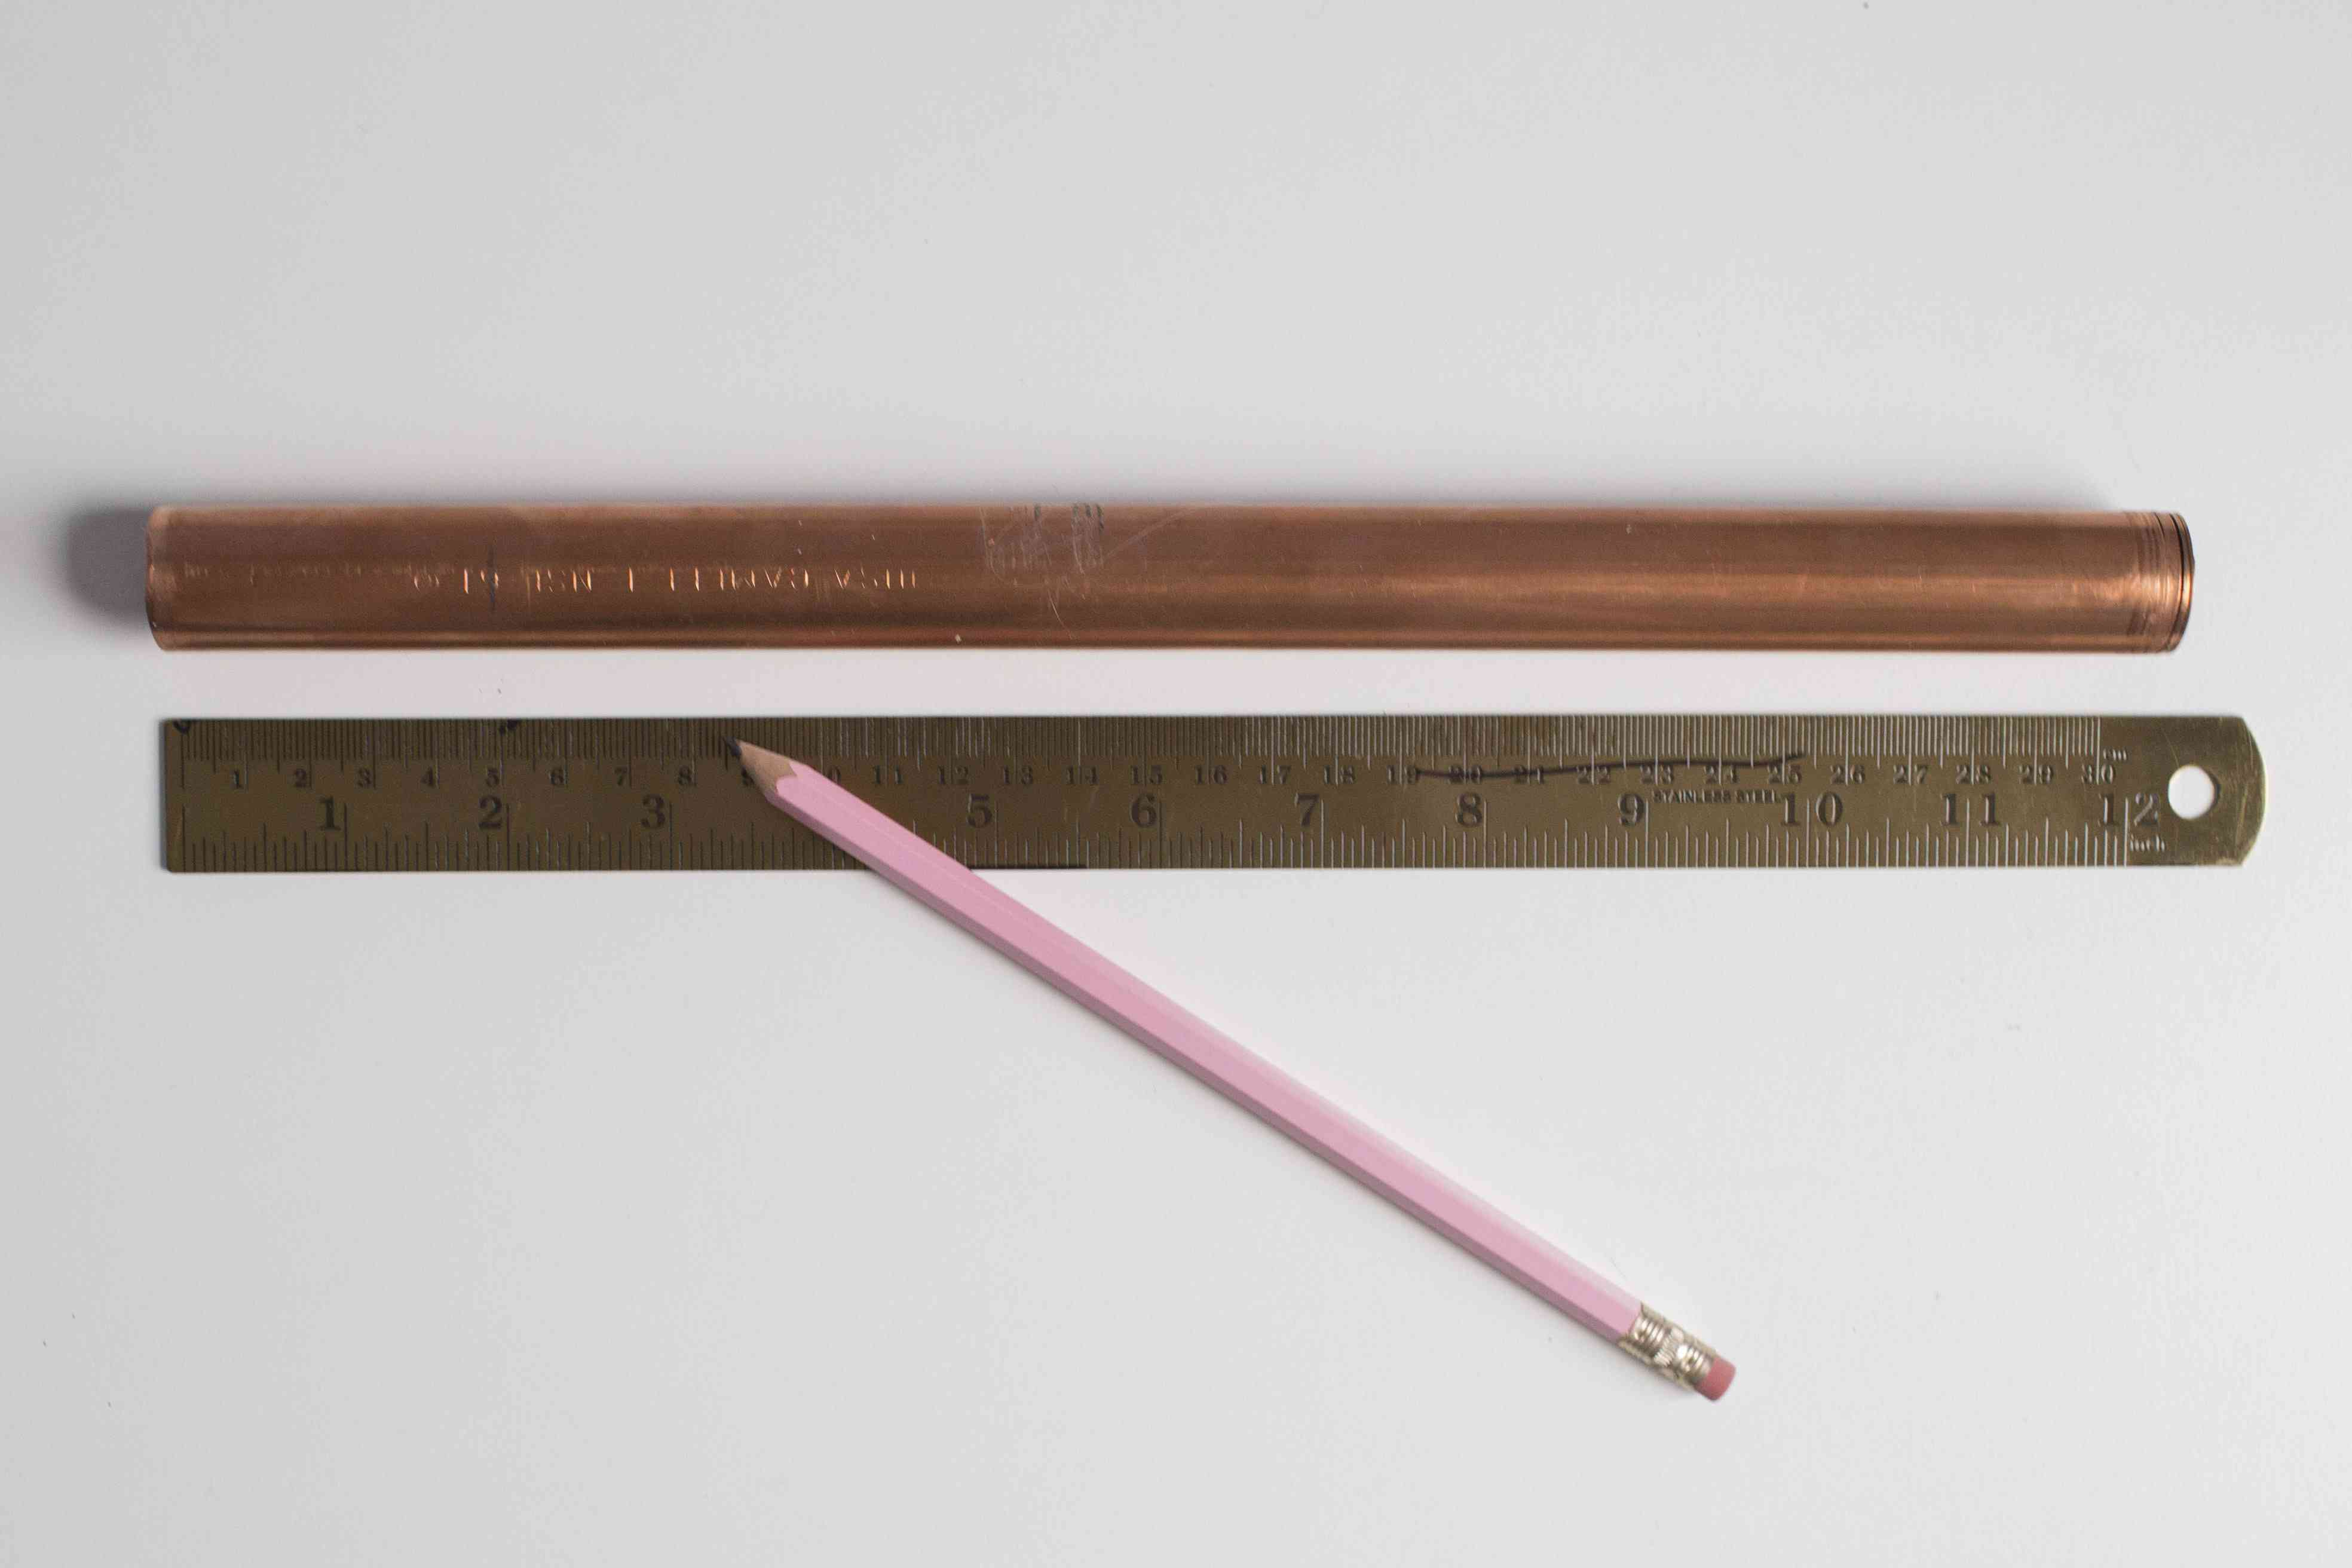 A pencil and ruler next to a piece of copper pipe